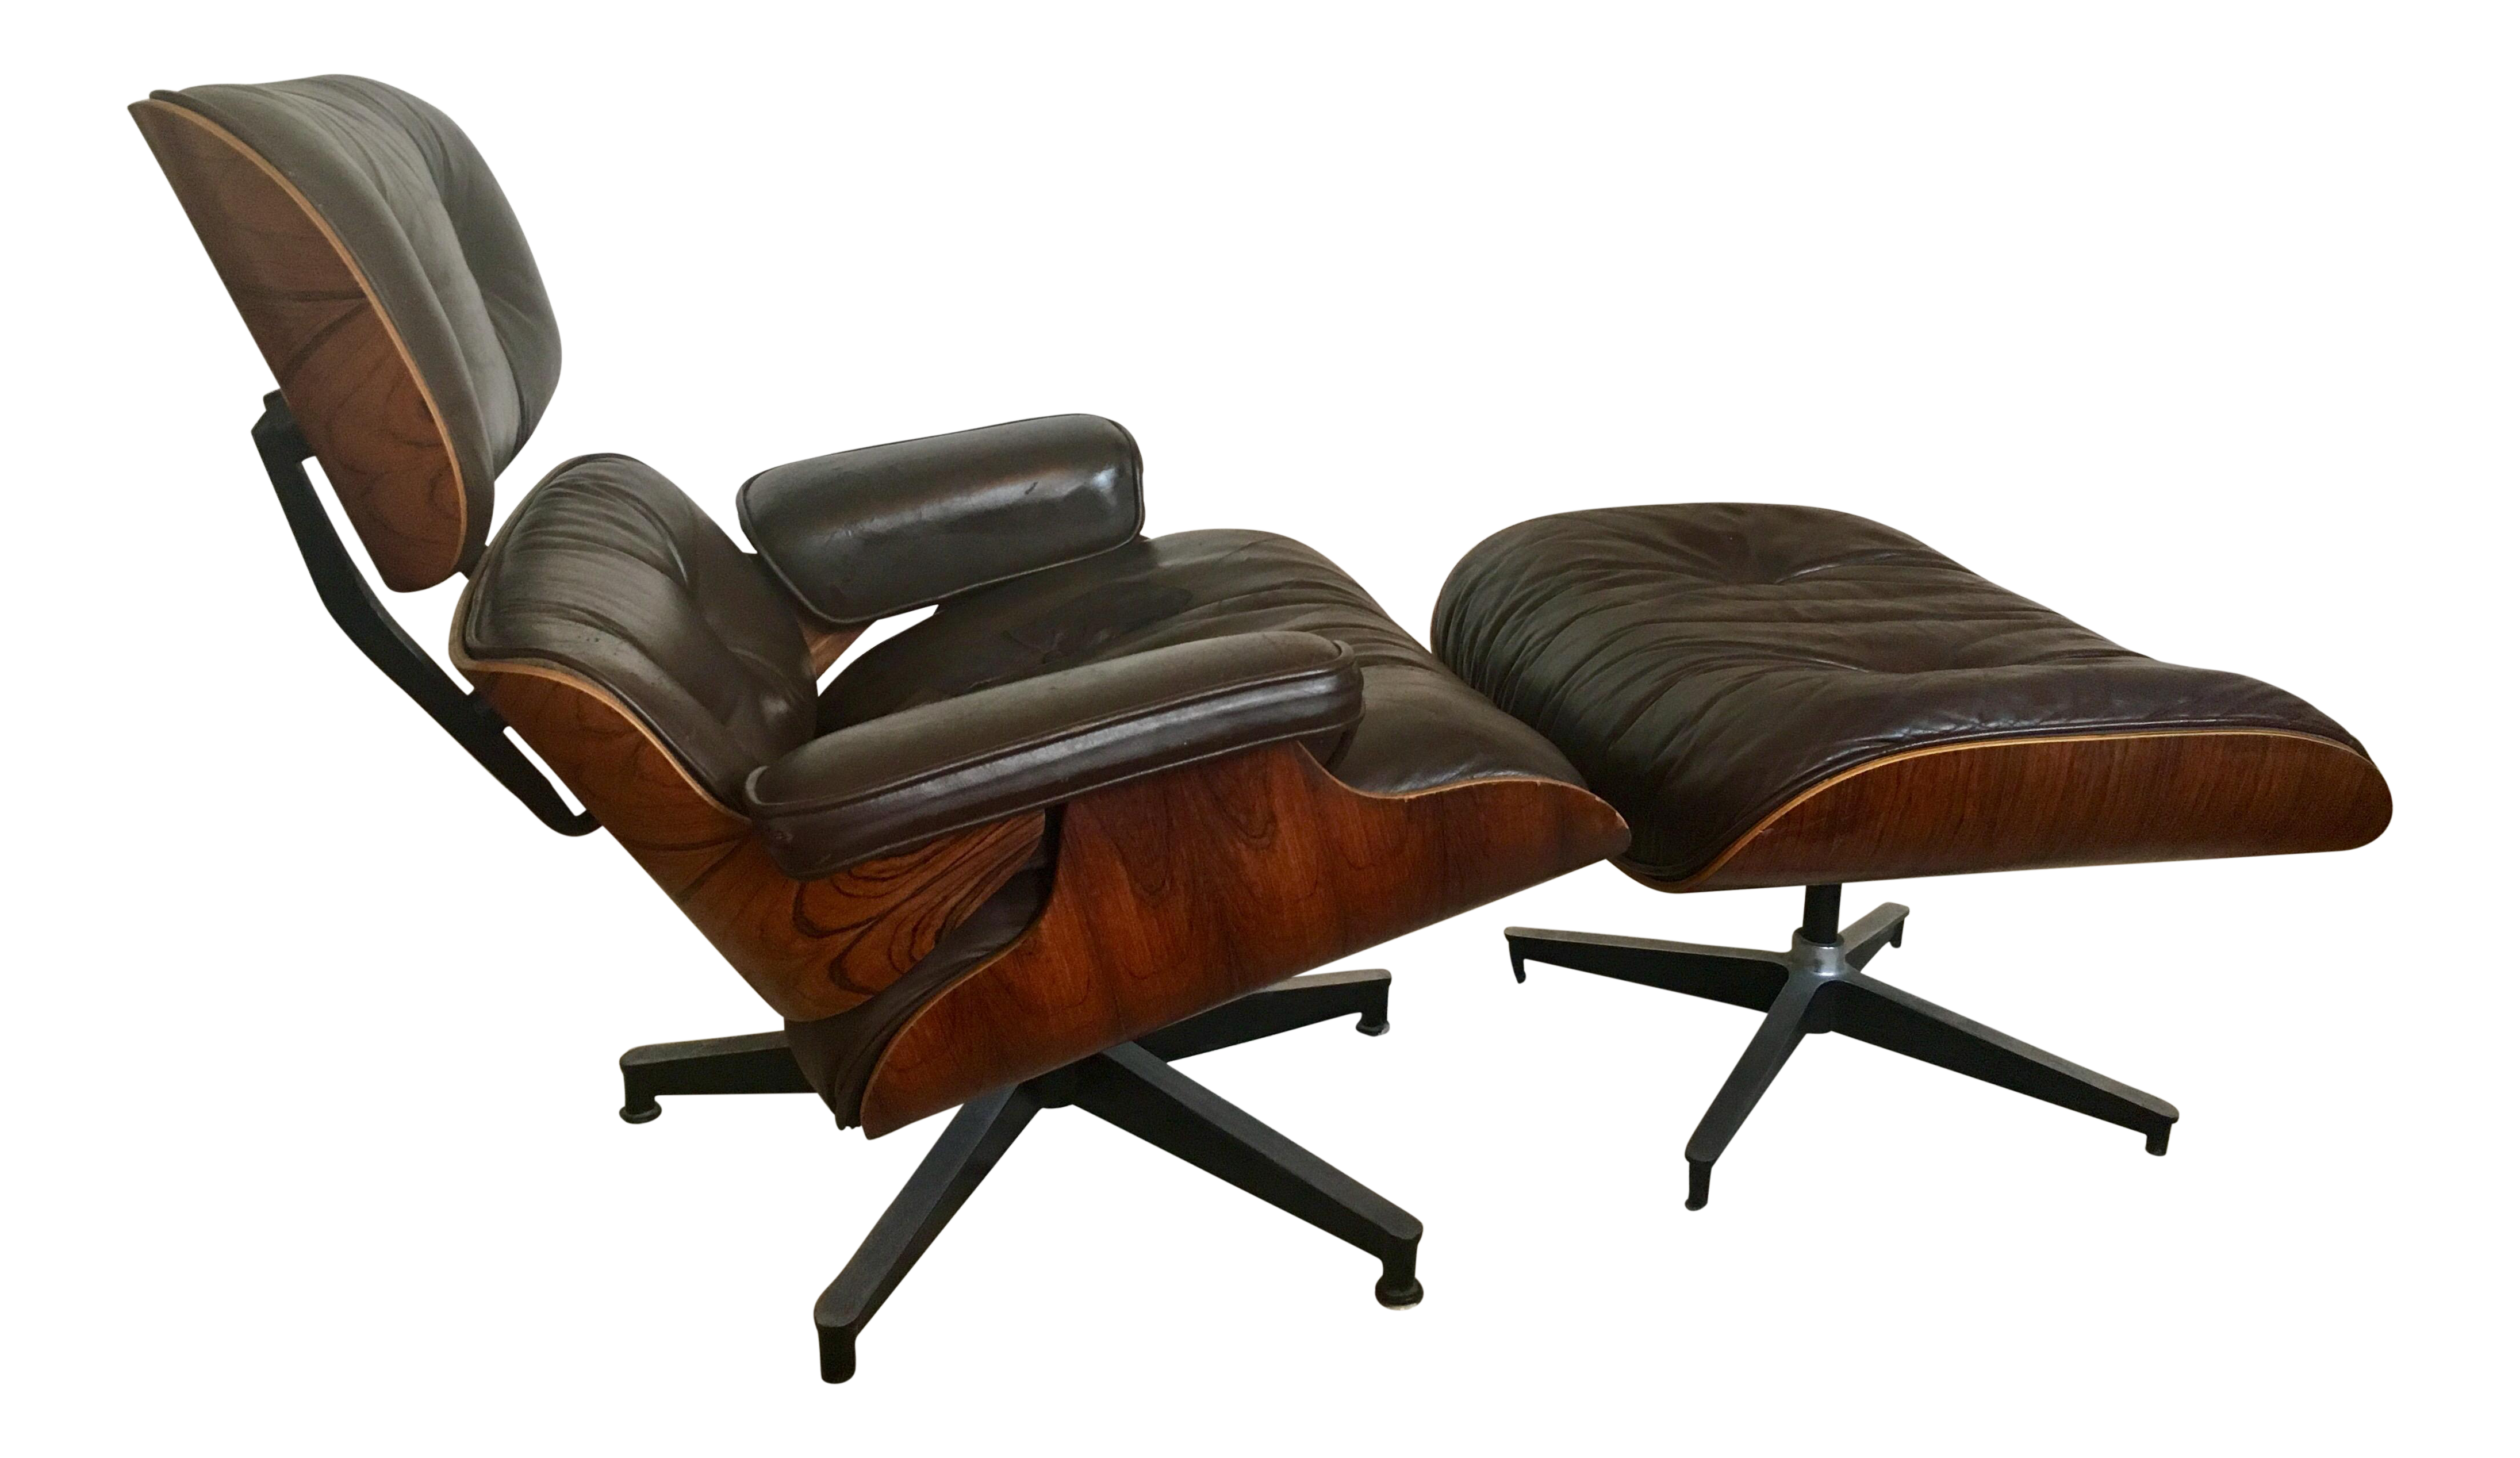 Rosewood Charles Eames for Herman Miller Lounge Chair & Ottoman